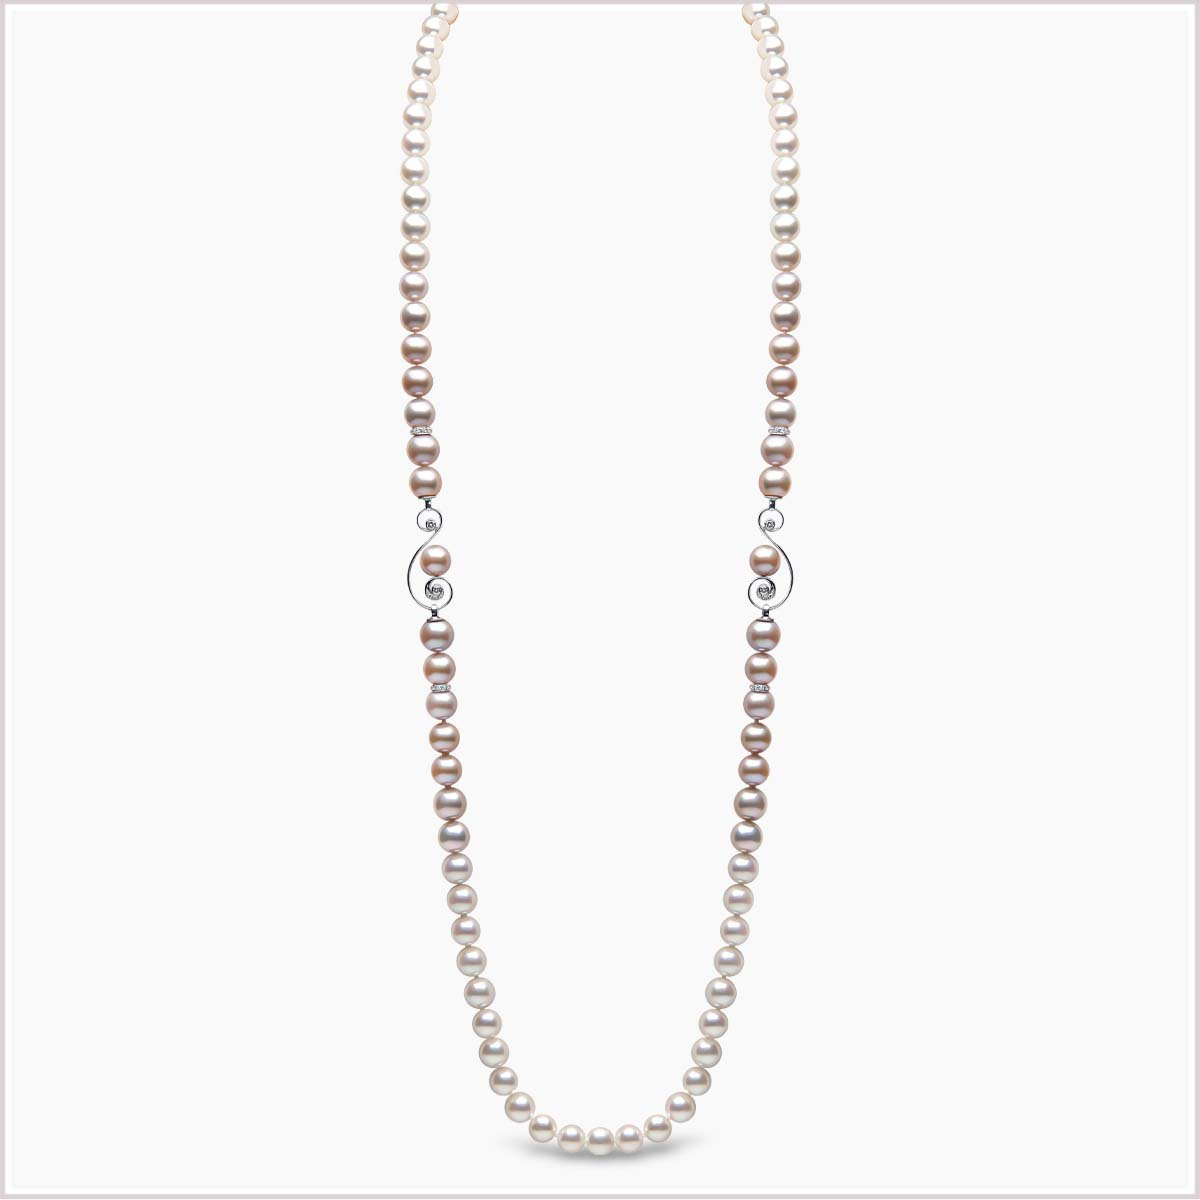 Yoko London Ombré Diamond, Akoya Pearl and Freshwater Pearl Necklace